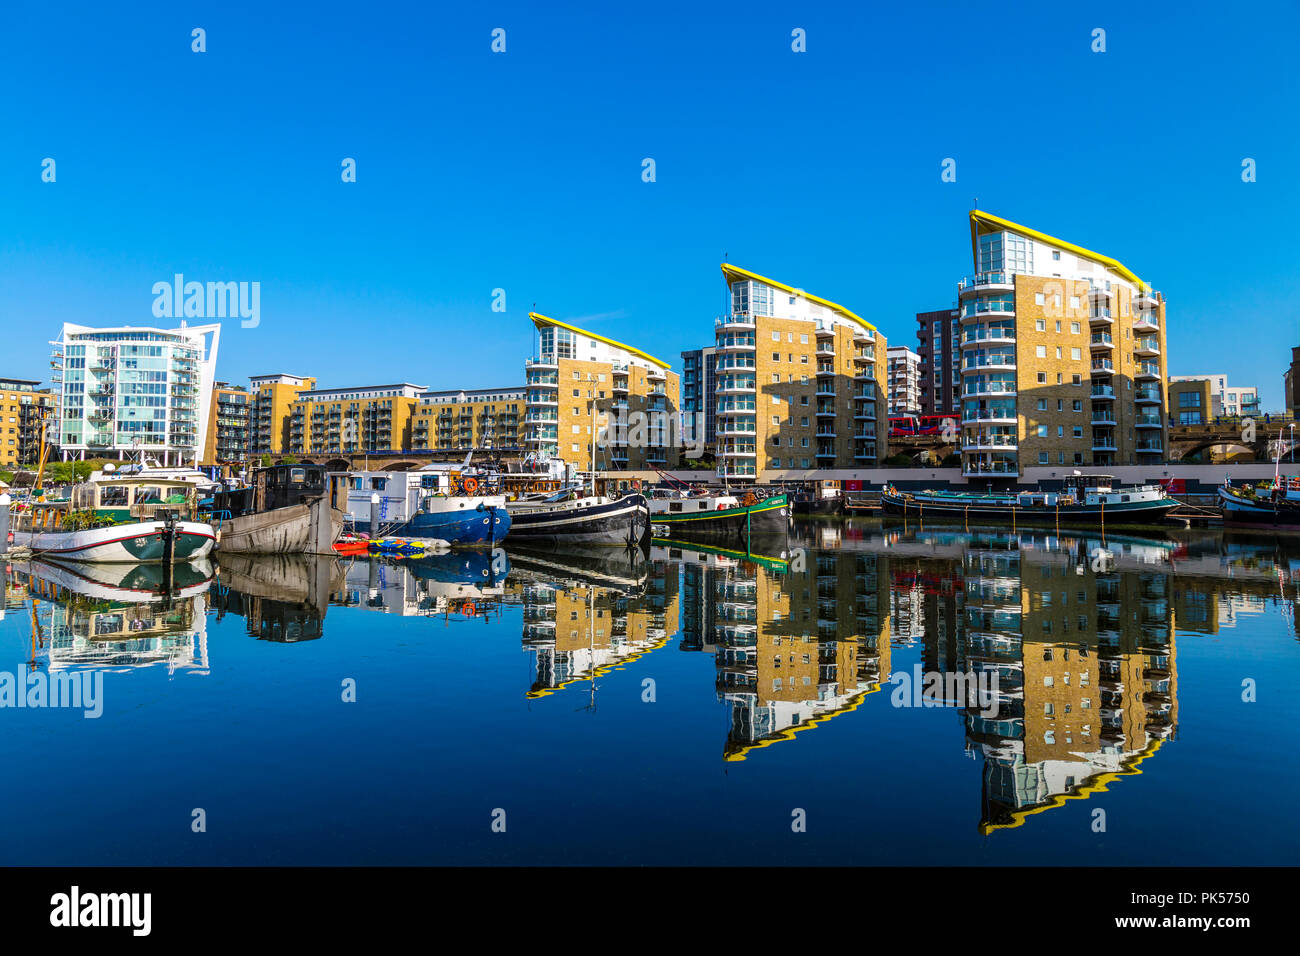 Houseboats and narrowboats mooring in the Limehouse Marina on a sunny day, London, UK - Stock Image